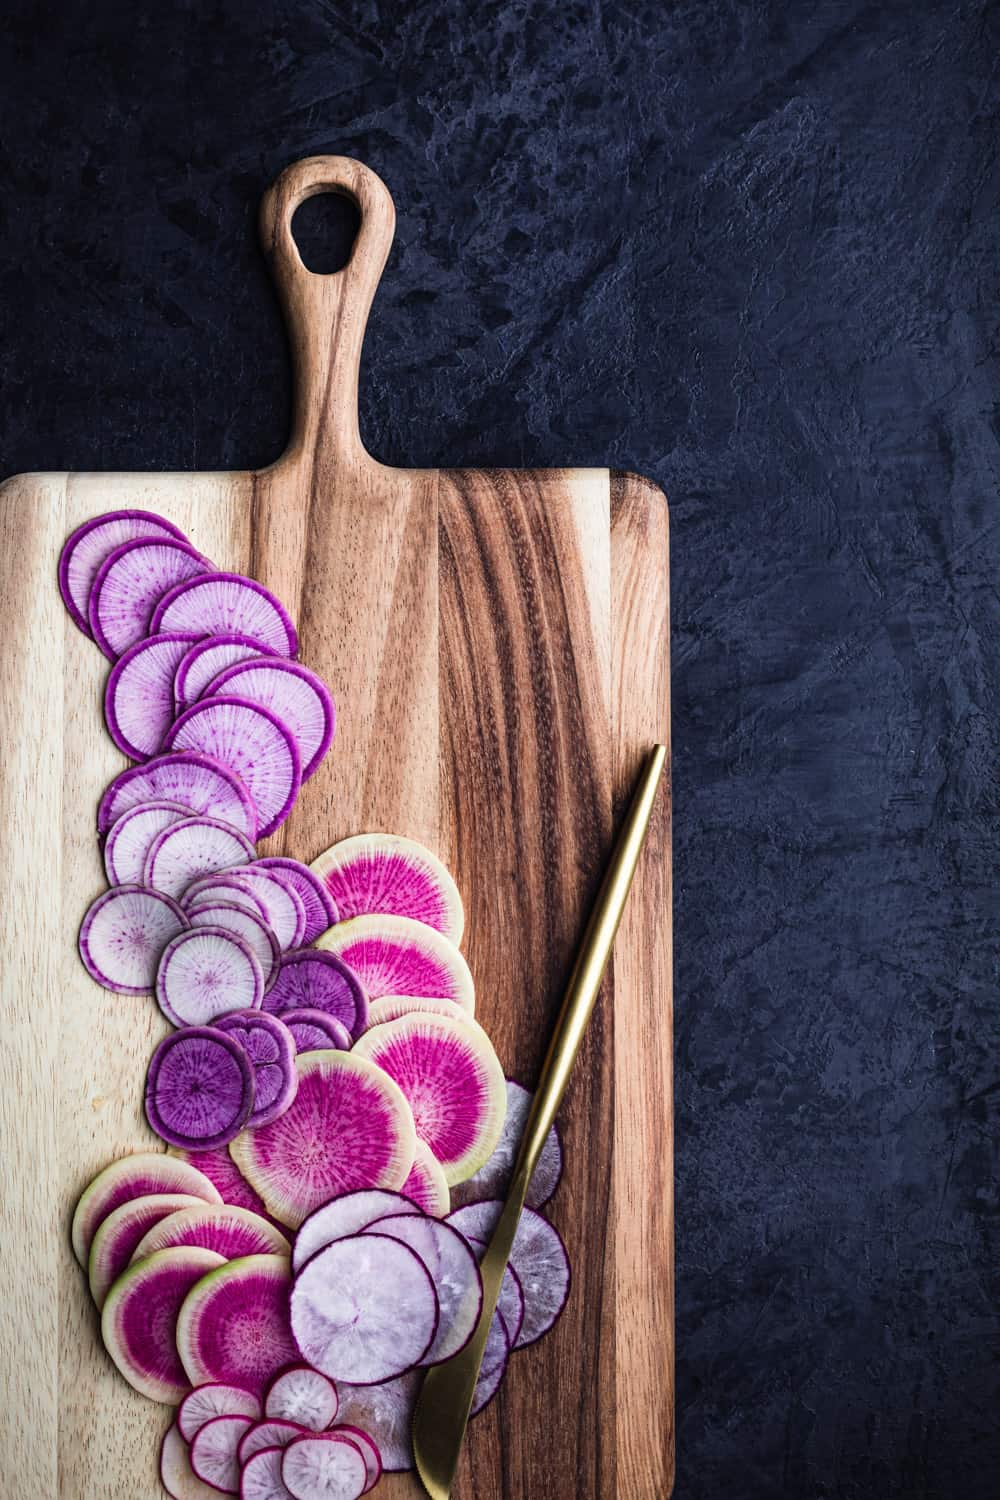 Ninja, watermelon, Cincinnati and round radishes, thinly sliced on a wood cutting board on a black background